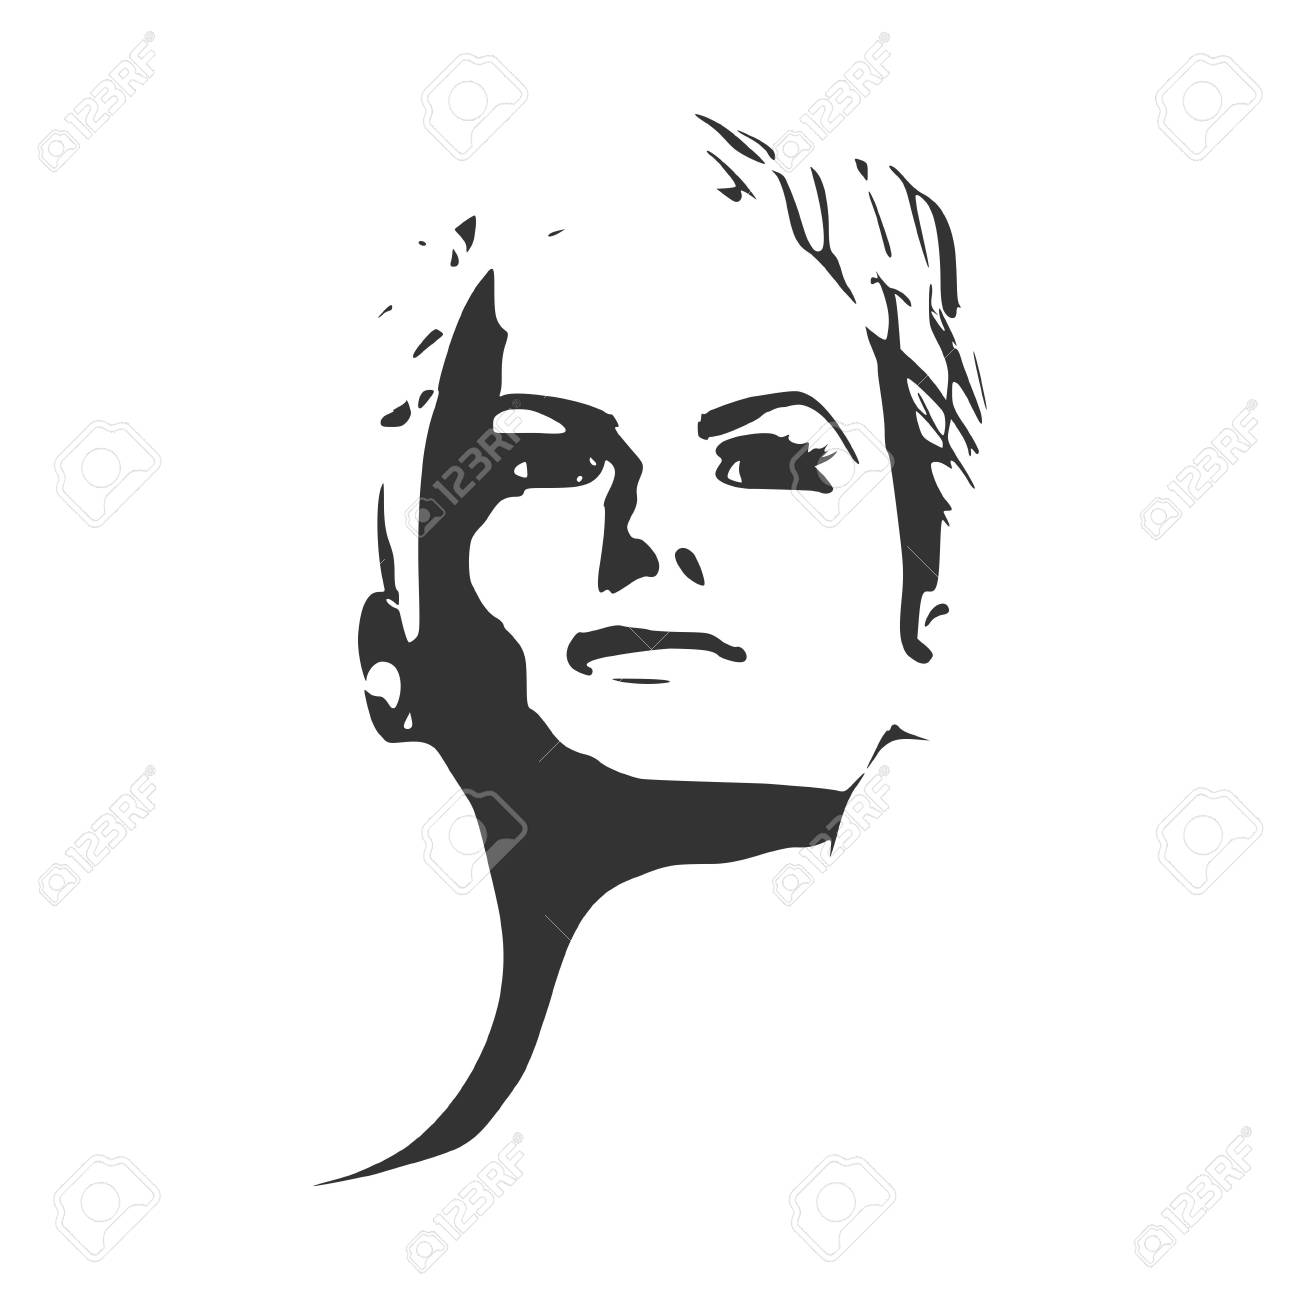 face front view elegant silhouette of a female head monochrome